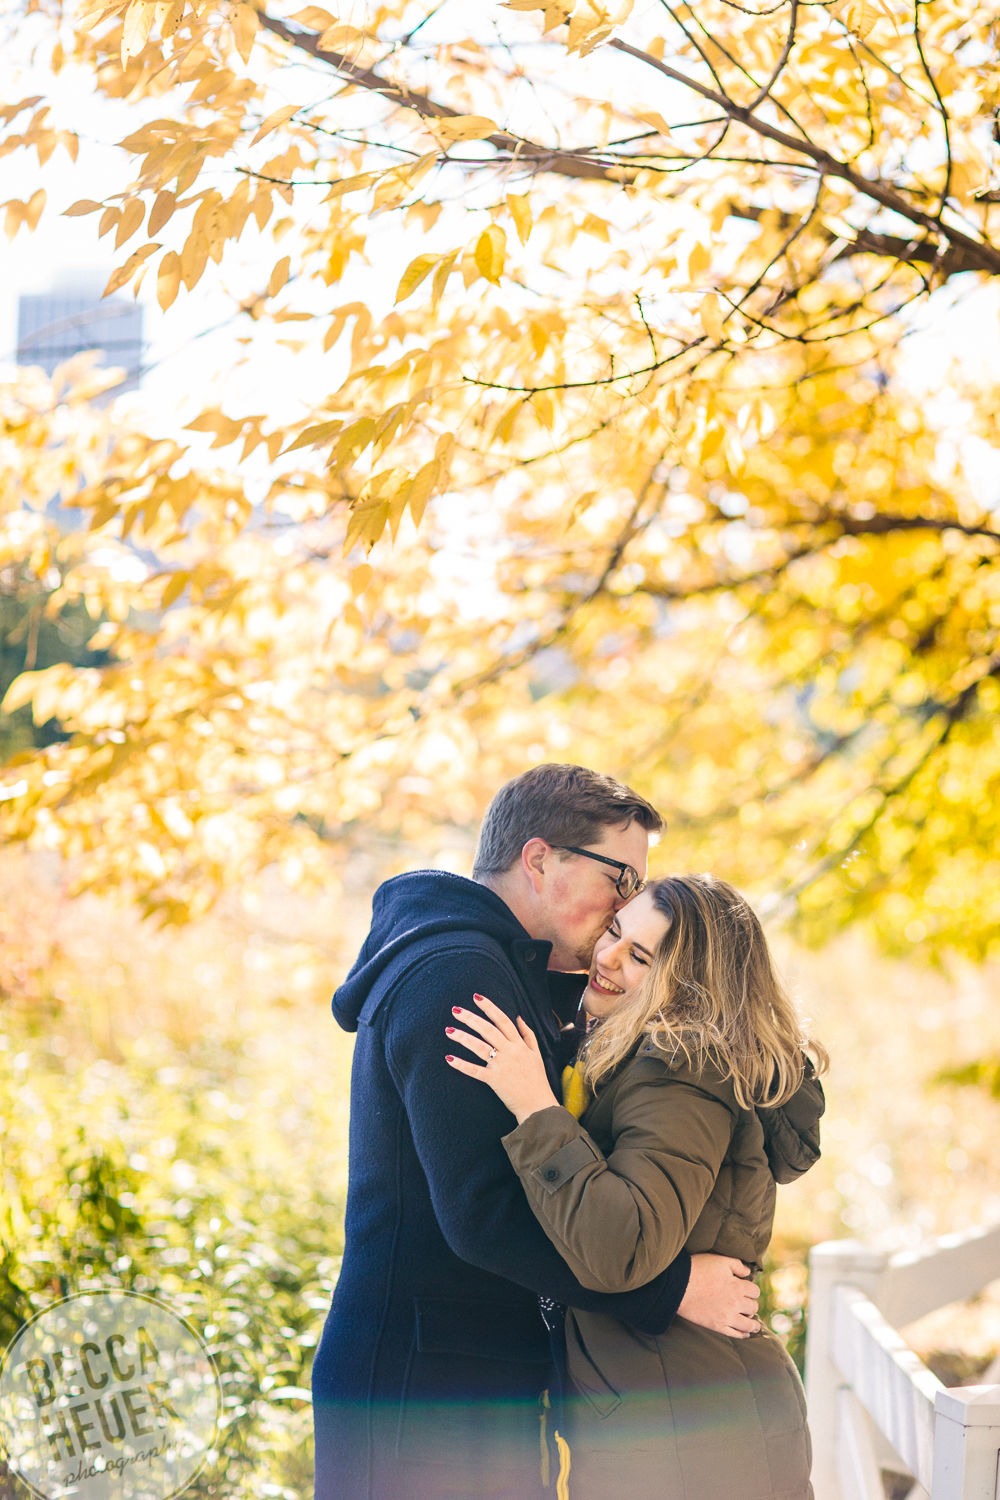 LincolnPark Proposal_Engagement Photography-019.jpg